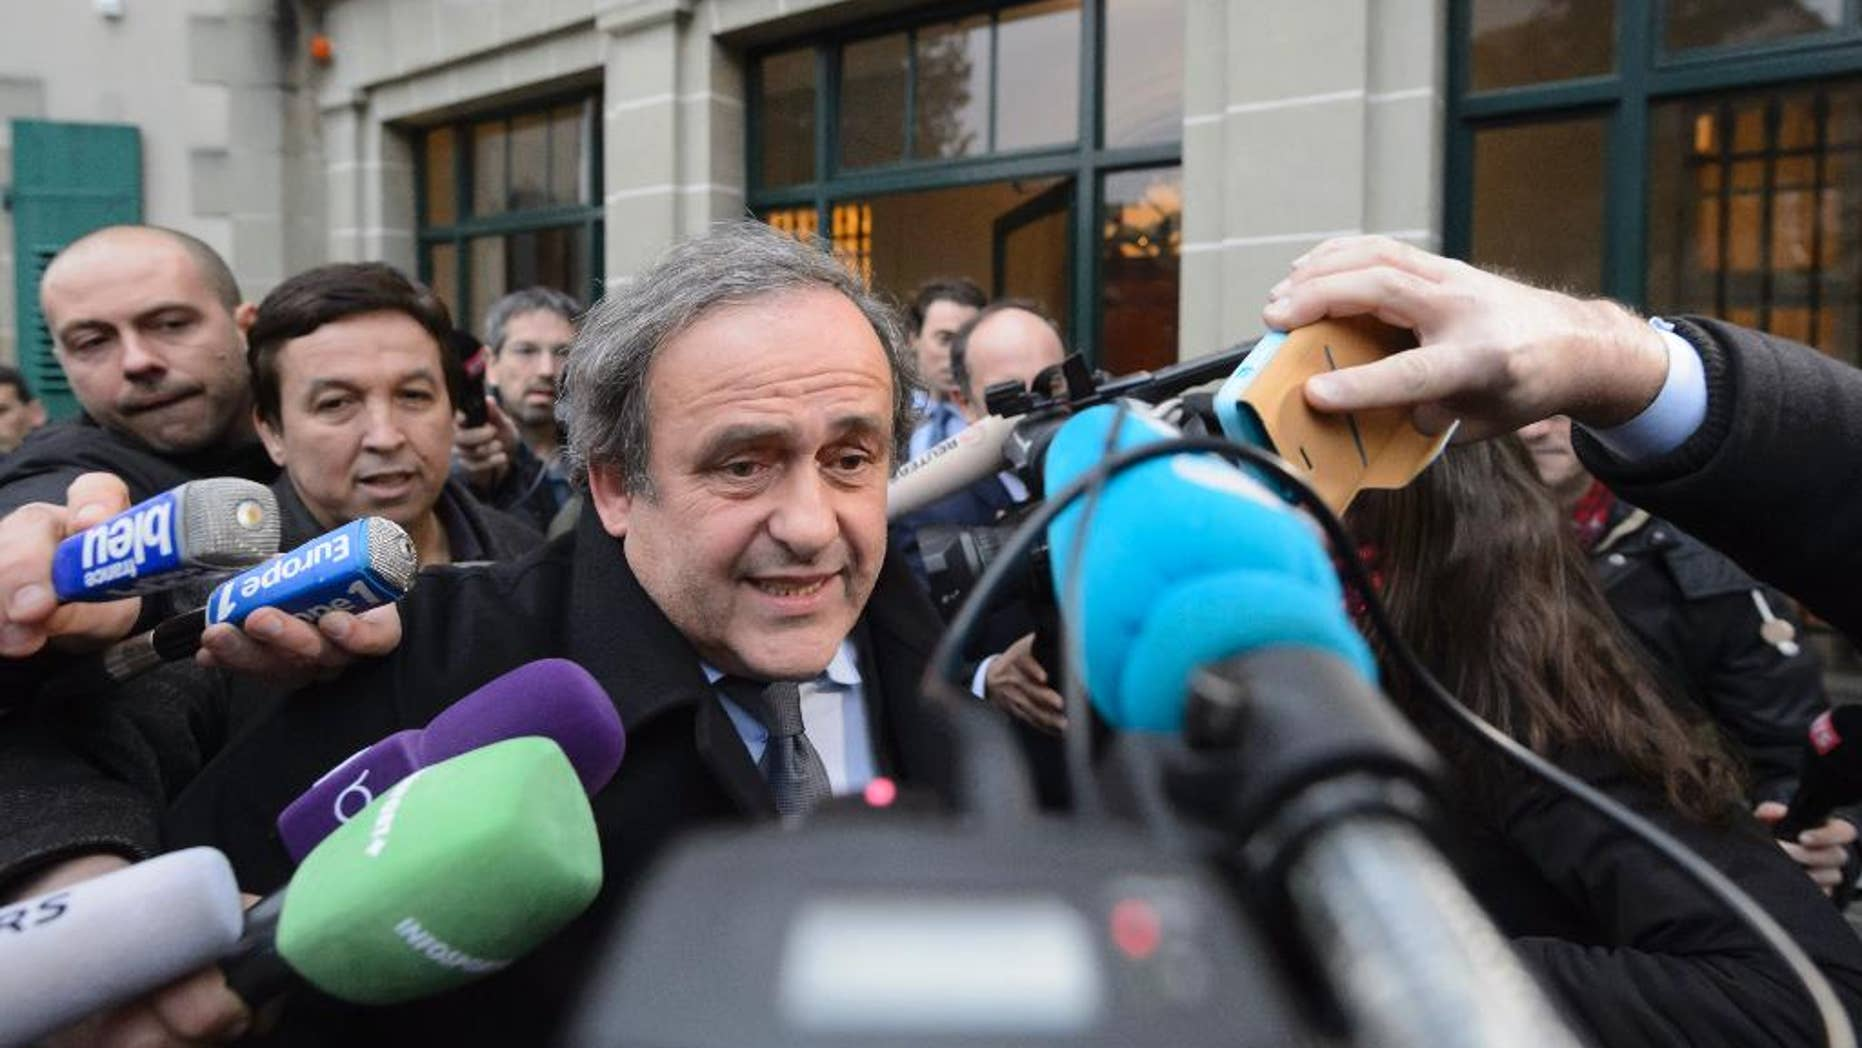 UEFA-President Michel Platini of France is surrounded by media after a hearing at the international Court of Arbitration for Sport, CAS, in Lausanne, Switzerland, Tuesday, Dec. 8, 2015. Platini appealed against a 90-day ban which is keeping him out of the presidential race for the sport's scandal-plagued governing body FIFA. (Laurent Gillieron/Keystone via AP)